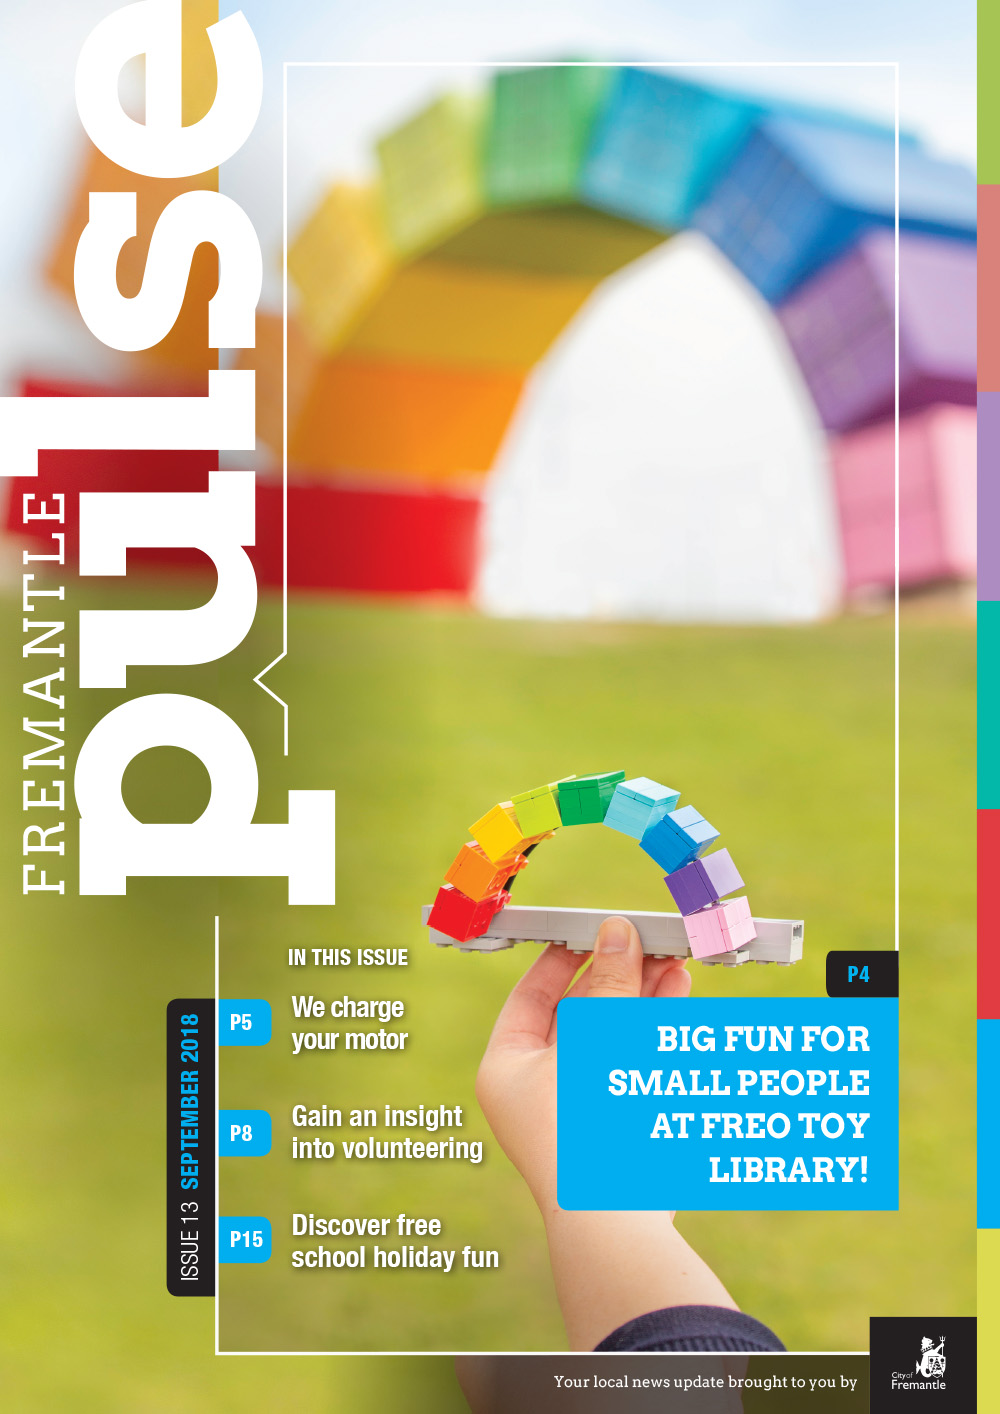 Front cover of the Pulse magazine showing a hand holding up a mini rainbow container with the real rainbow contain in the background.